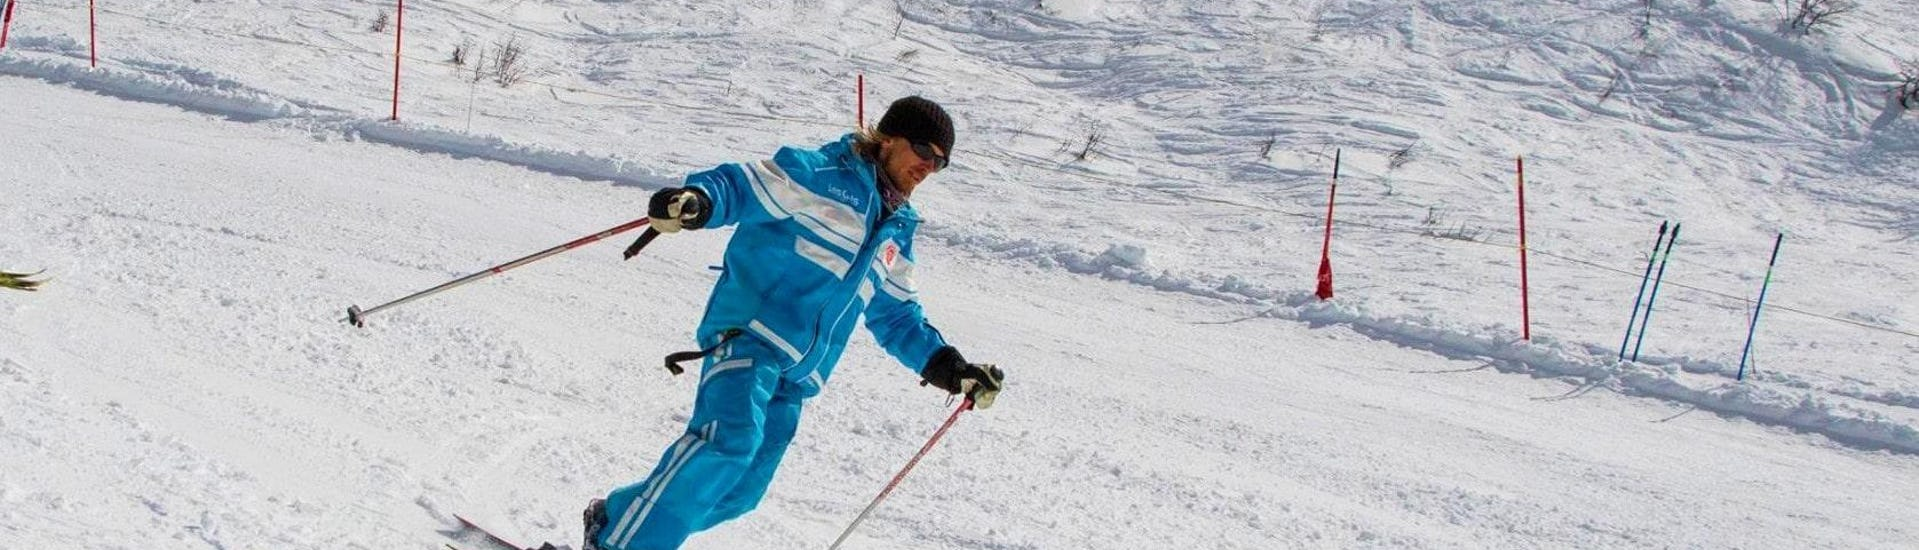 Private Ski Lessons for Adults - February 16 to 22